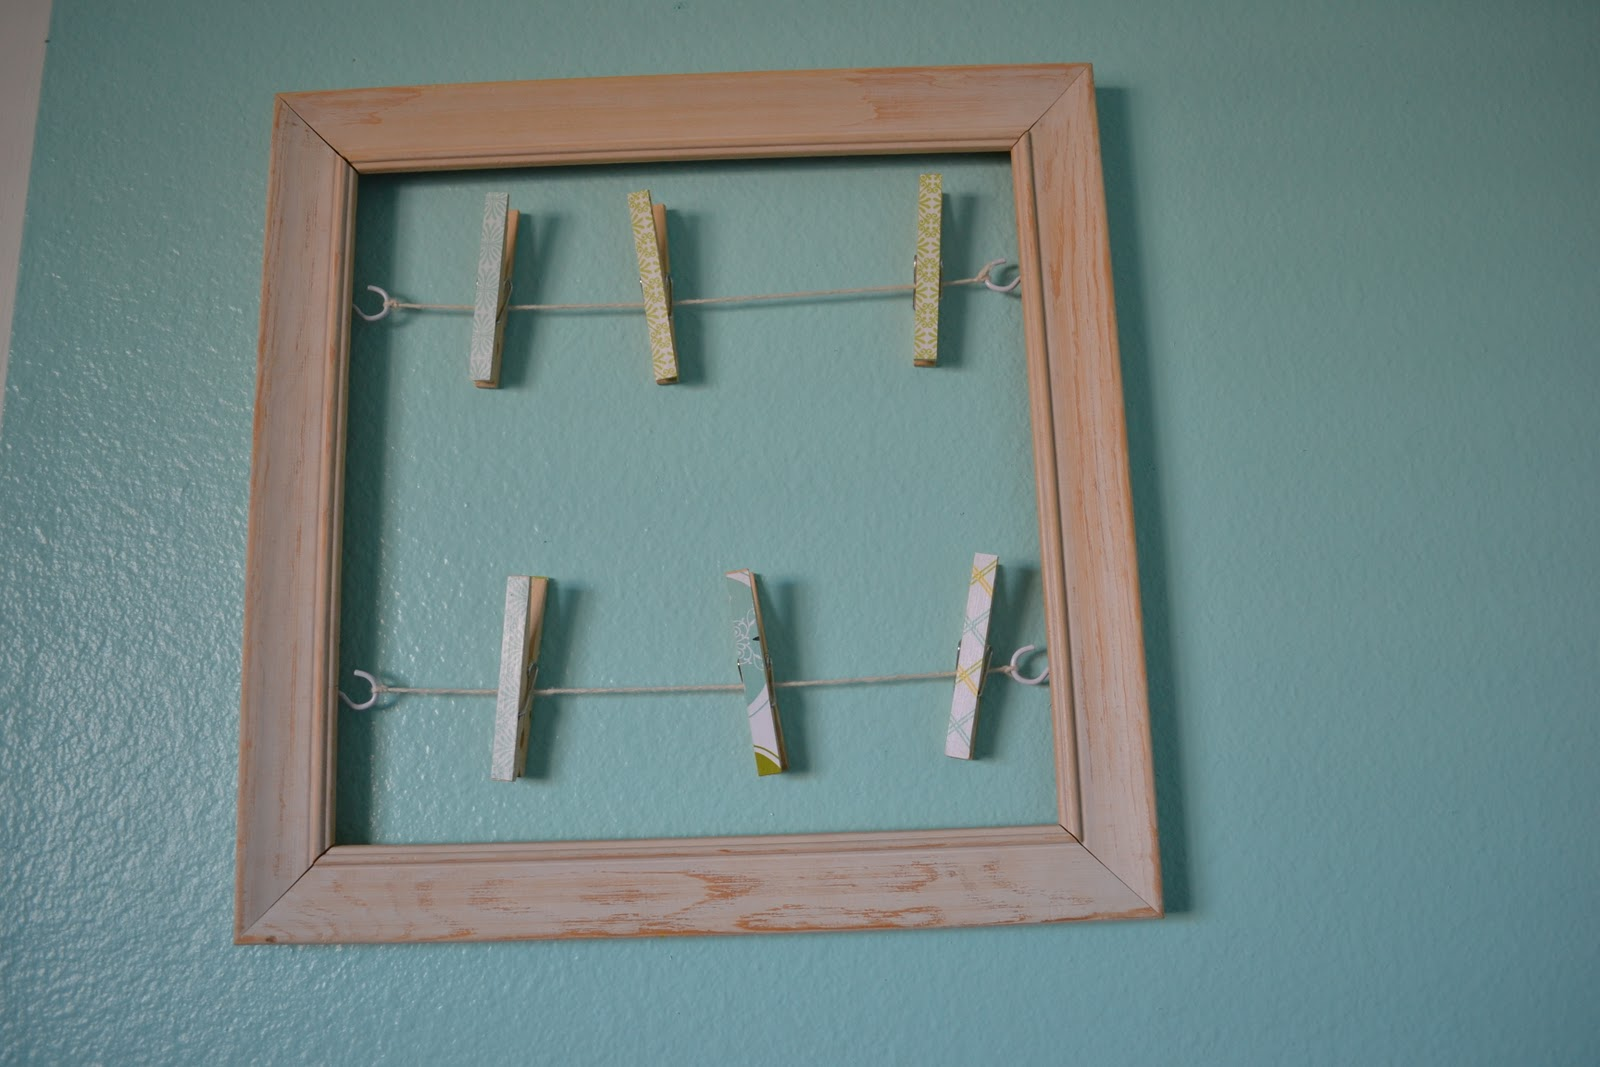 easy peasy lemon squeezy: Clothespin Frame